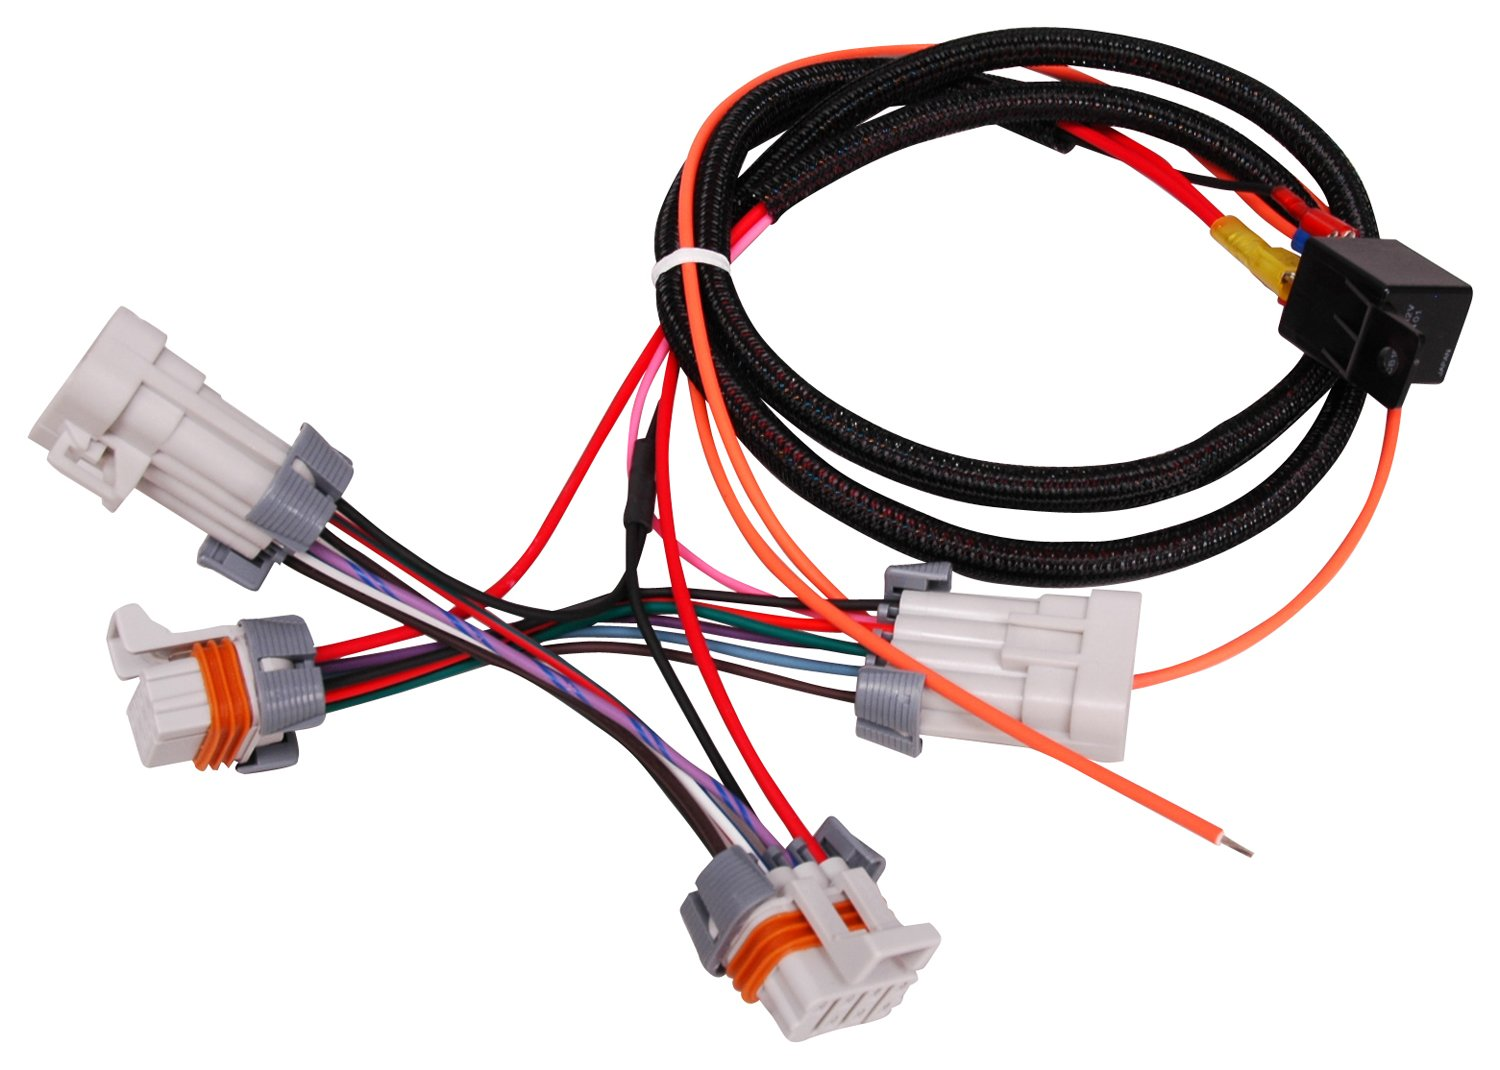 harnesses msd performance products tech support 888 258 3835 ls coil harness power upgrade